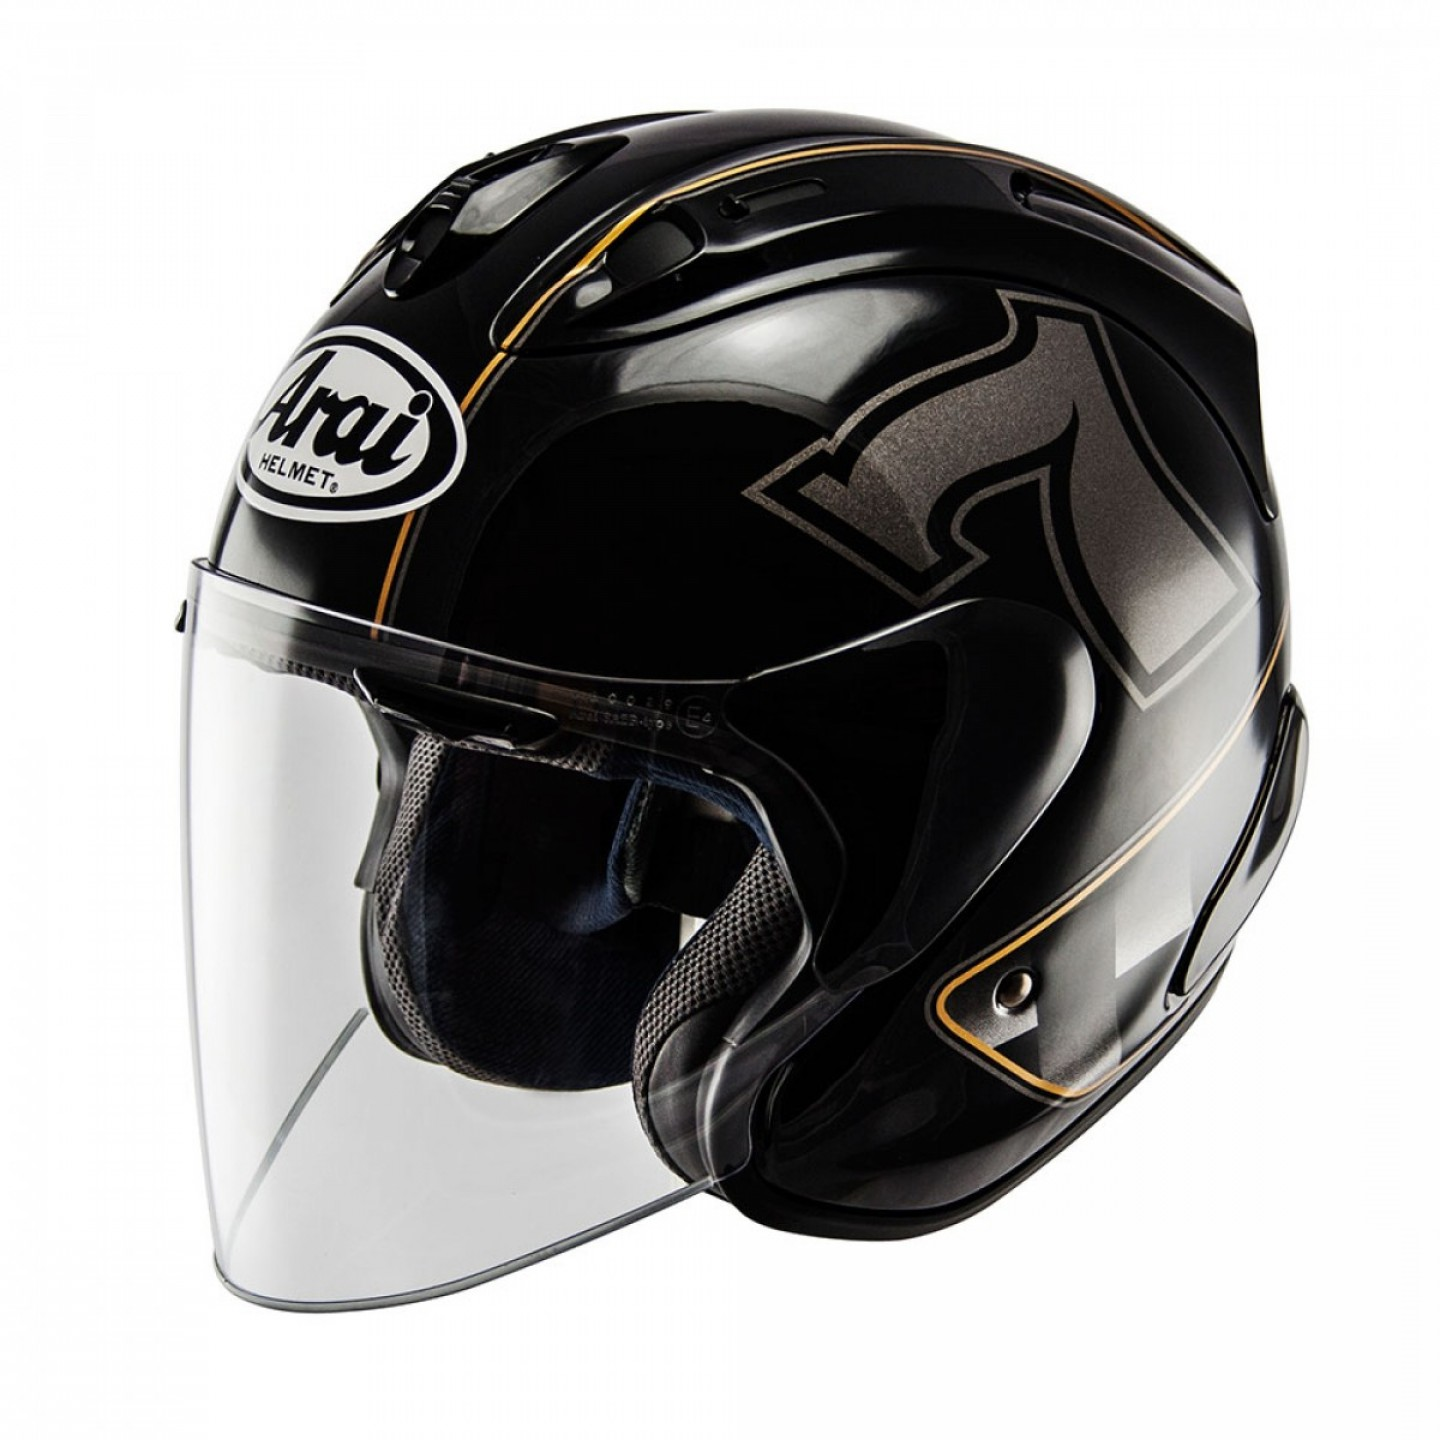 Arai Vector Green White 1: Arai Sz Ram X Cafe Racer Jet Black Helmetsarai Vector Reviewauthentic P